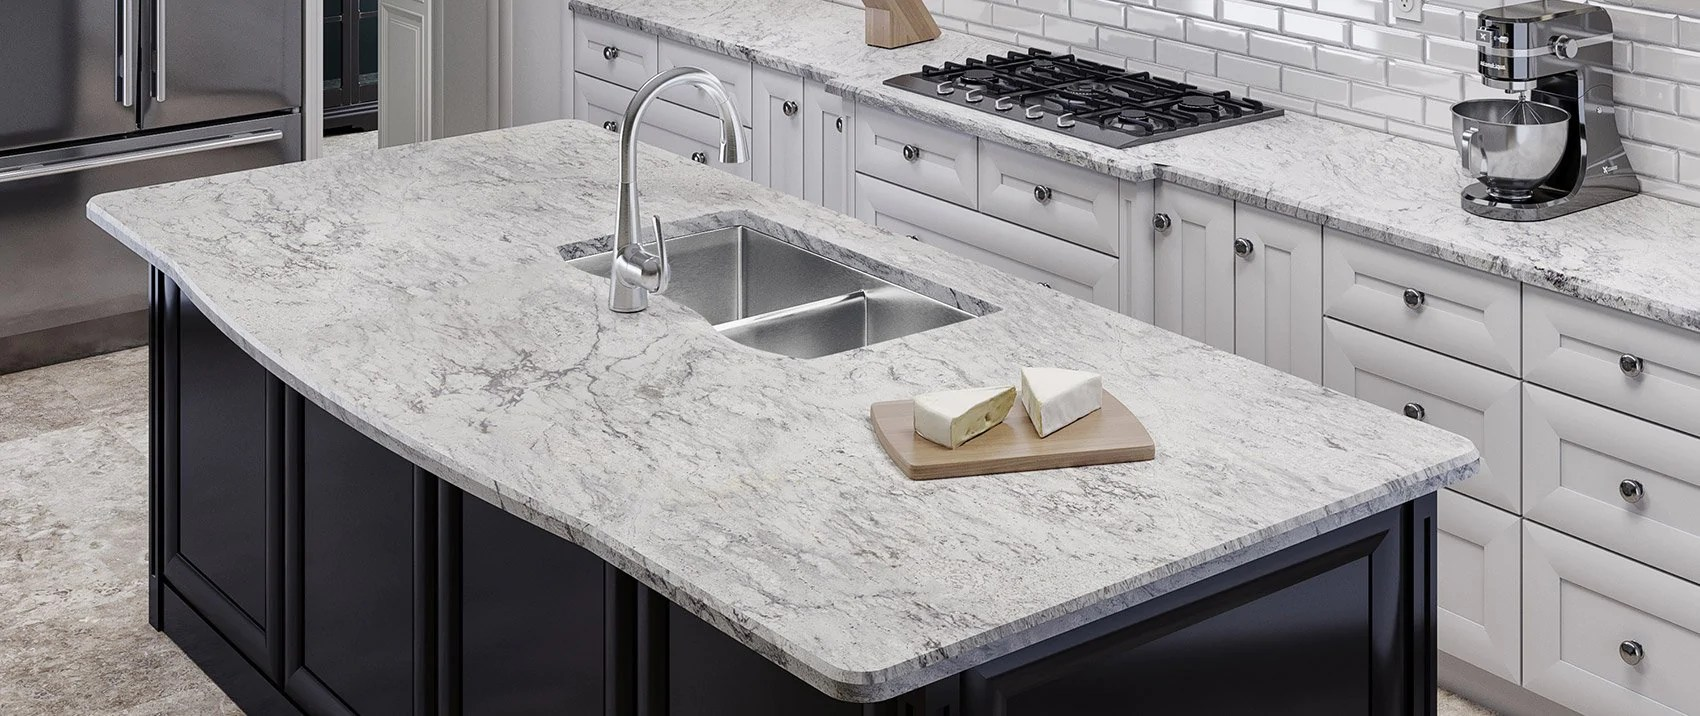 Quartz Countertop Prices Canada Allen Roth Countertops Kitchen Bath Remodel And Construction